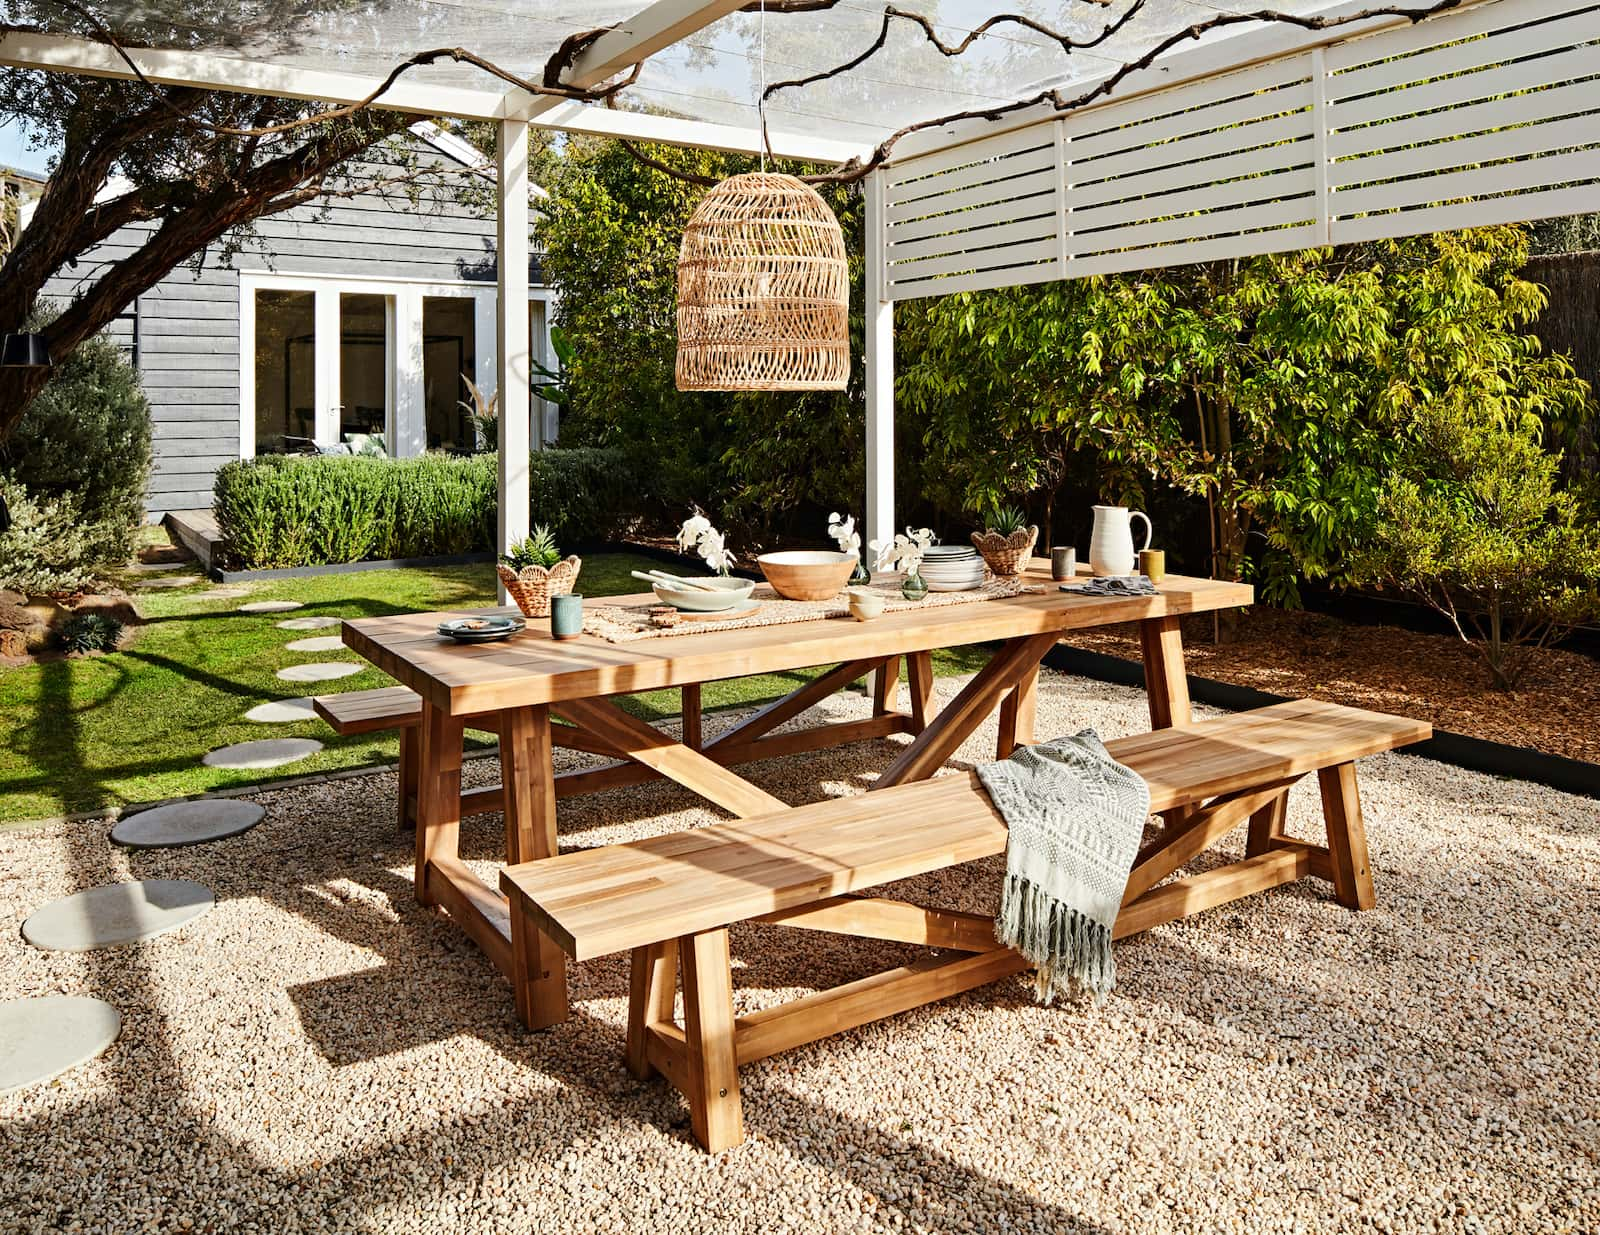 early settler reclaimed teak outdoor furniture dining table and benches in backyard